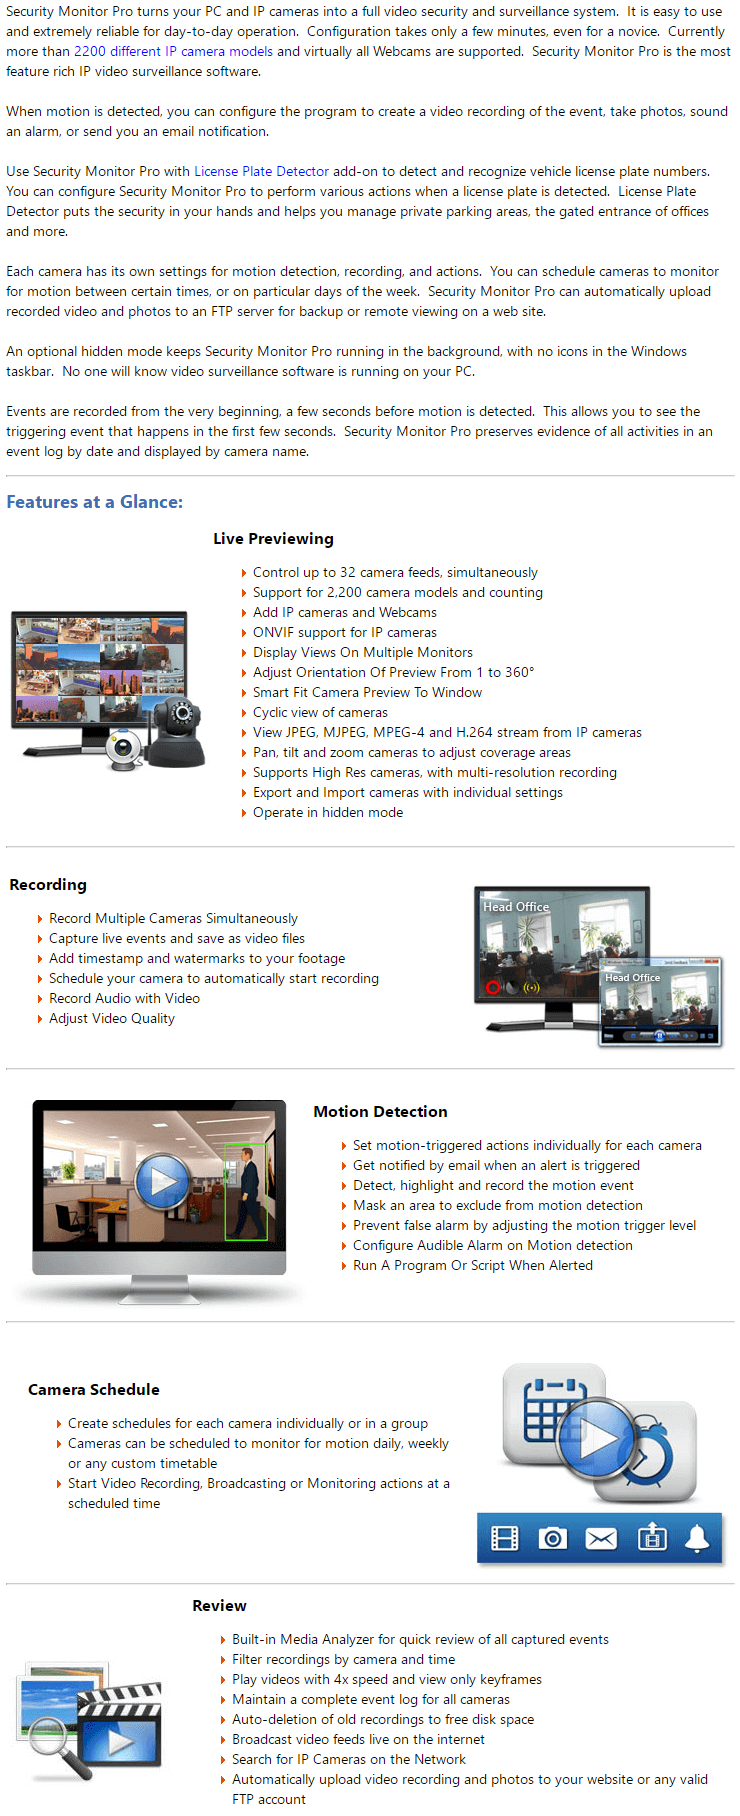 Security Monitor Pro's Feature